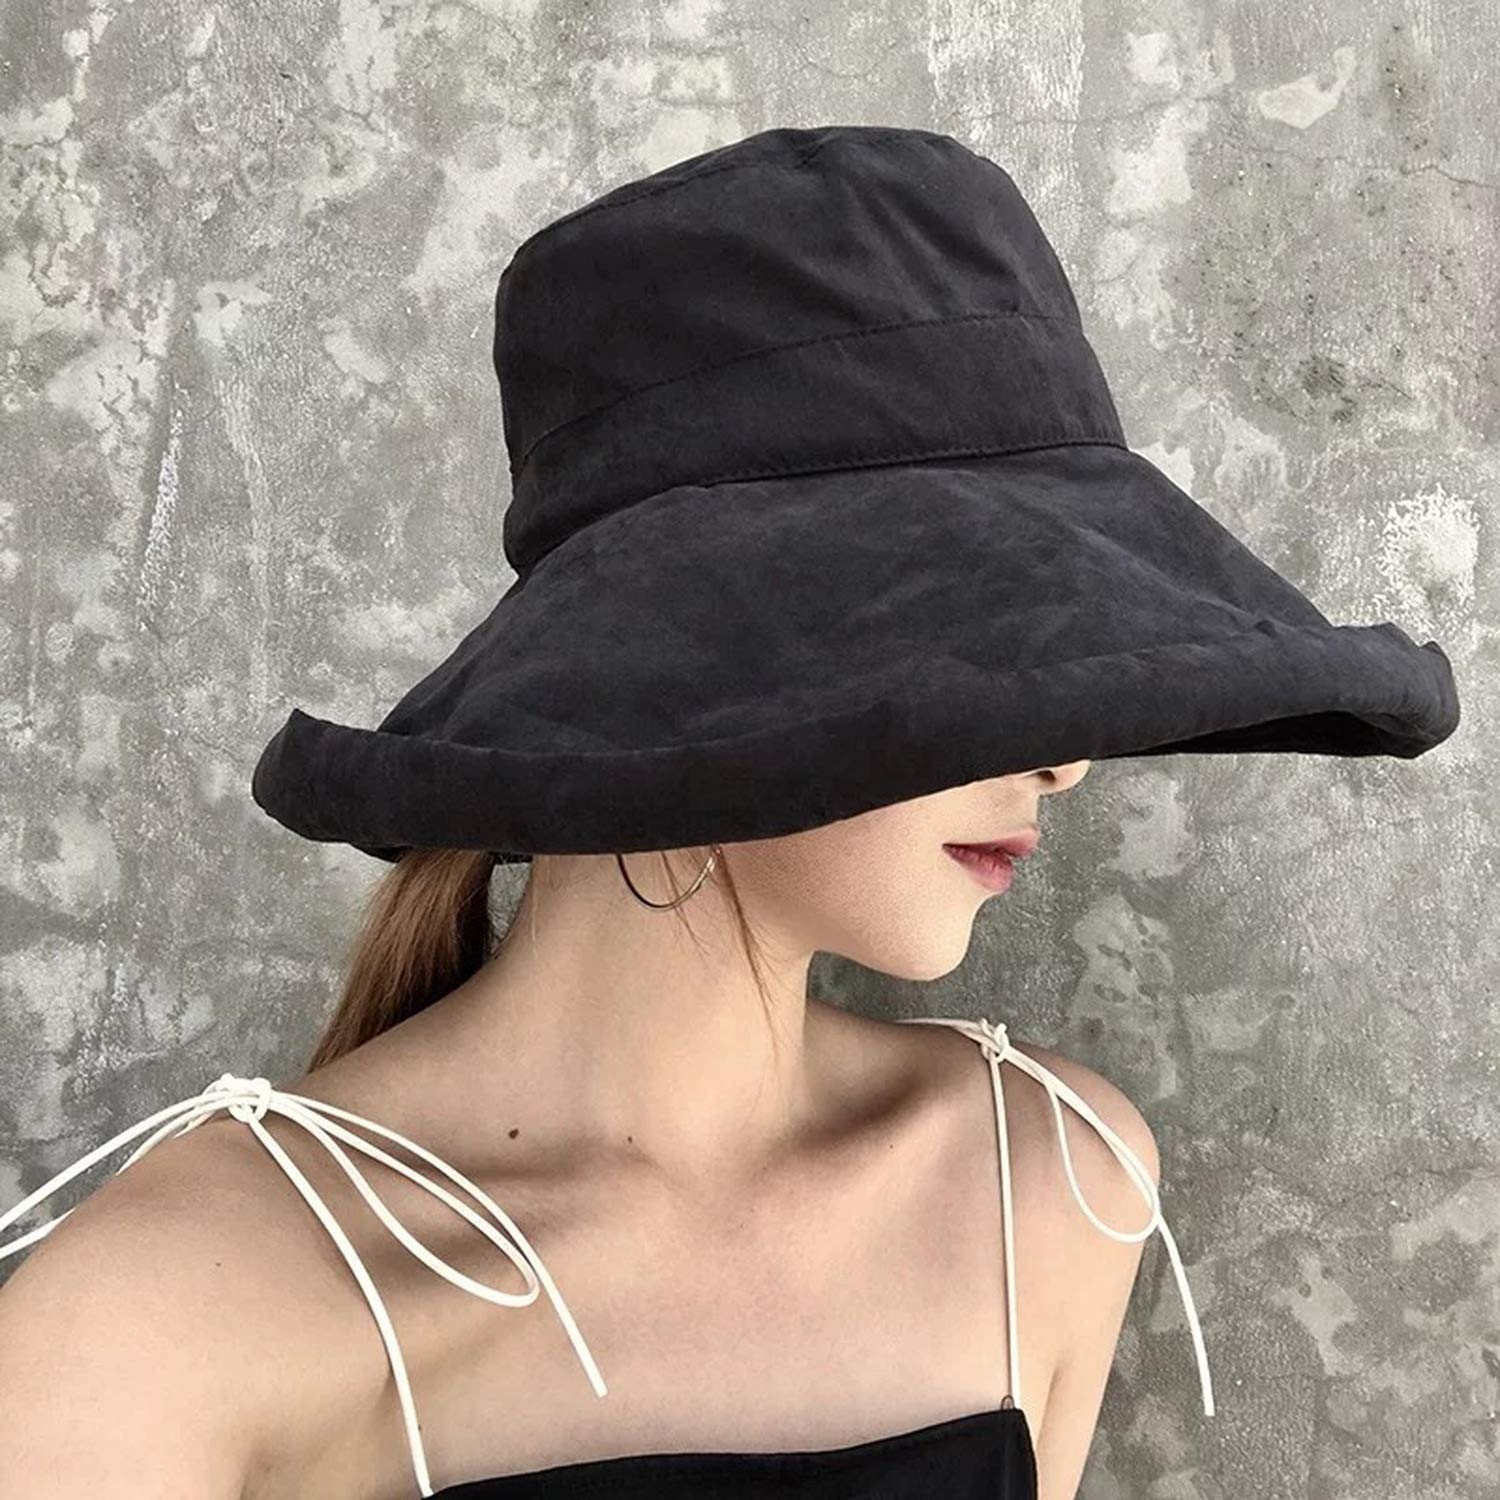 Bucket Hats Women Wide Brim Sunscreen Summer Solid Elegant Womens Fisherman Hat All-Match Leisure Trendy Retro Chic